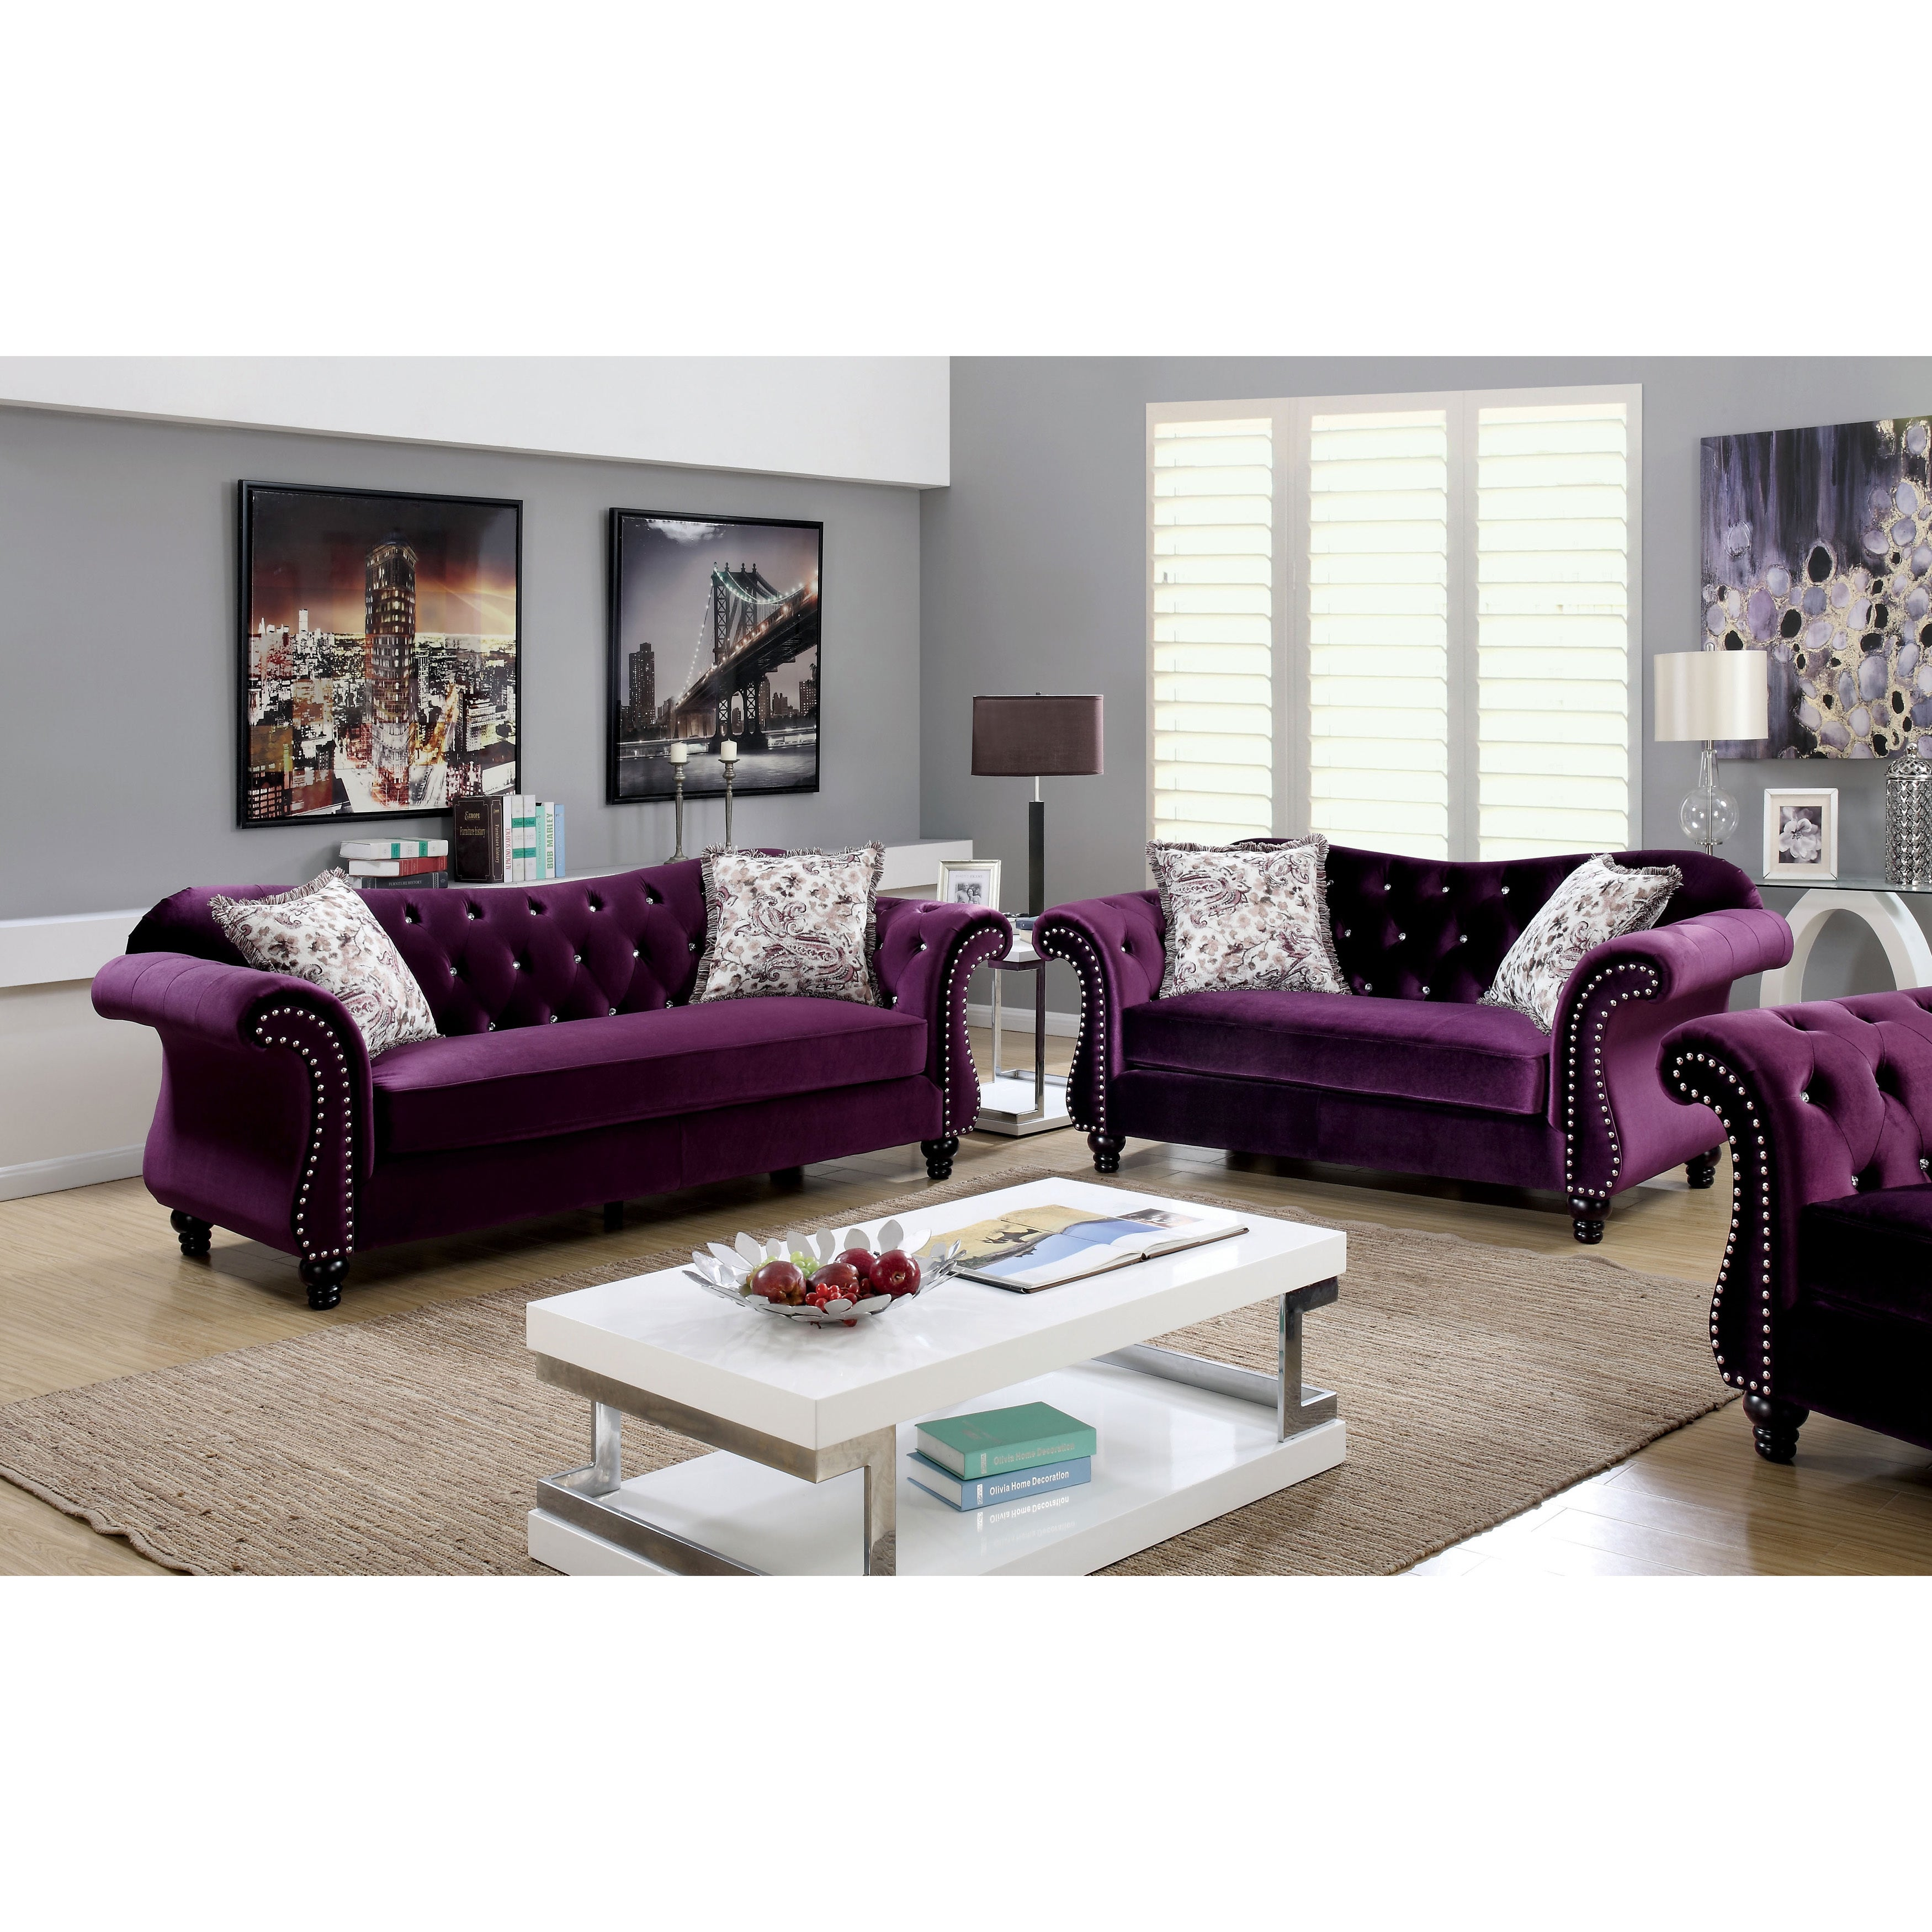 Furniture Of America Dessie Traditional 3 Piece Tufted Sofa Set On Free Shipping Today 11502096